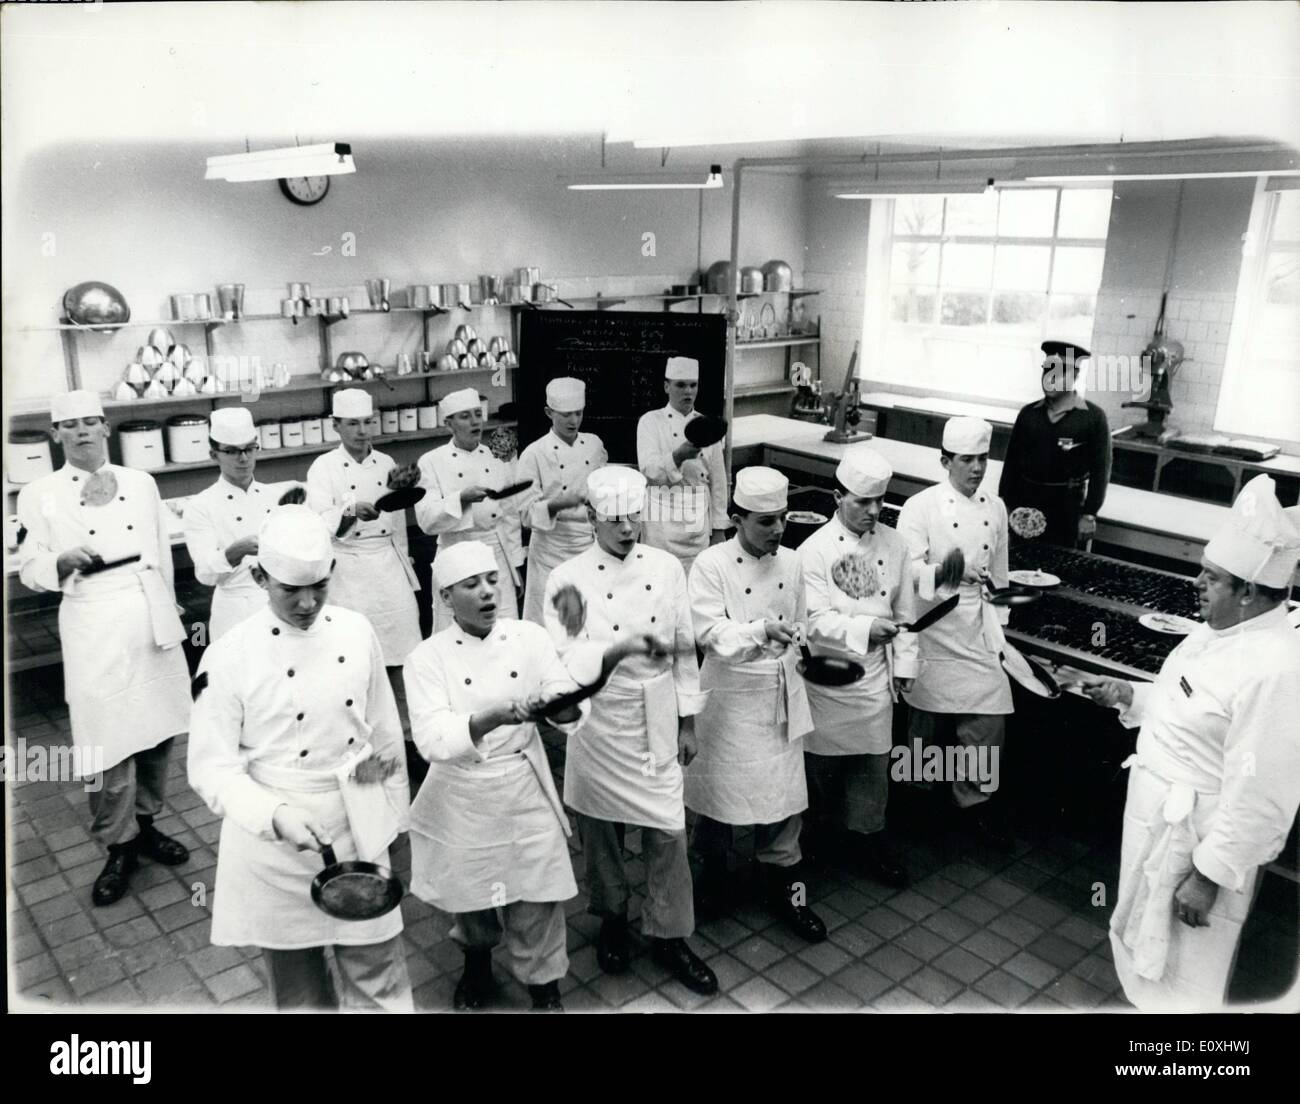 Jan. 01, 1967 - Learning how to toss a ;pancake the army way. There may be rather more than two weeks to go to shrove Tuesday, but when the day dawns the army catering corps are not going to be caught with their pancakers done, accordingly 50 apprentice cooks were deployed at corps he in aldershot for what the blackboard revealed to be ''Manual of army catering services recipe no. 559. Pancakes, 50. '' in command of the exercise was former warrant officer William janner, berm - and the bit where the pacakes were tossed turned out to be an only slightly flawed mast piece of military precision - Stock Image